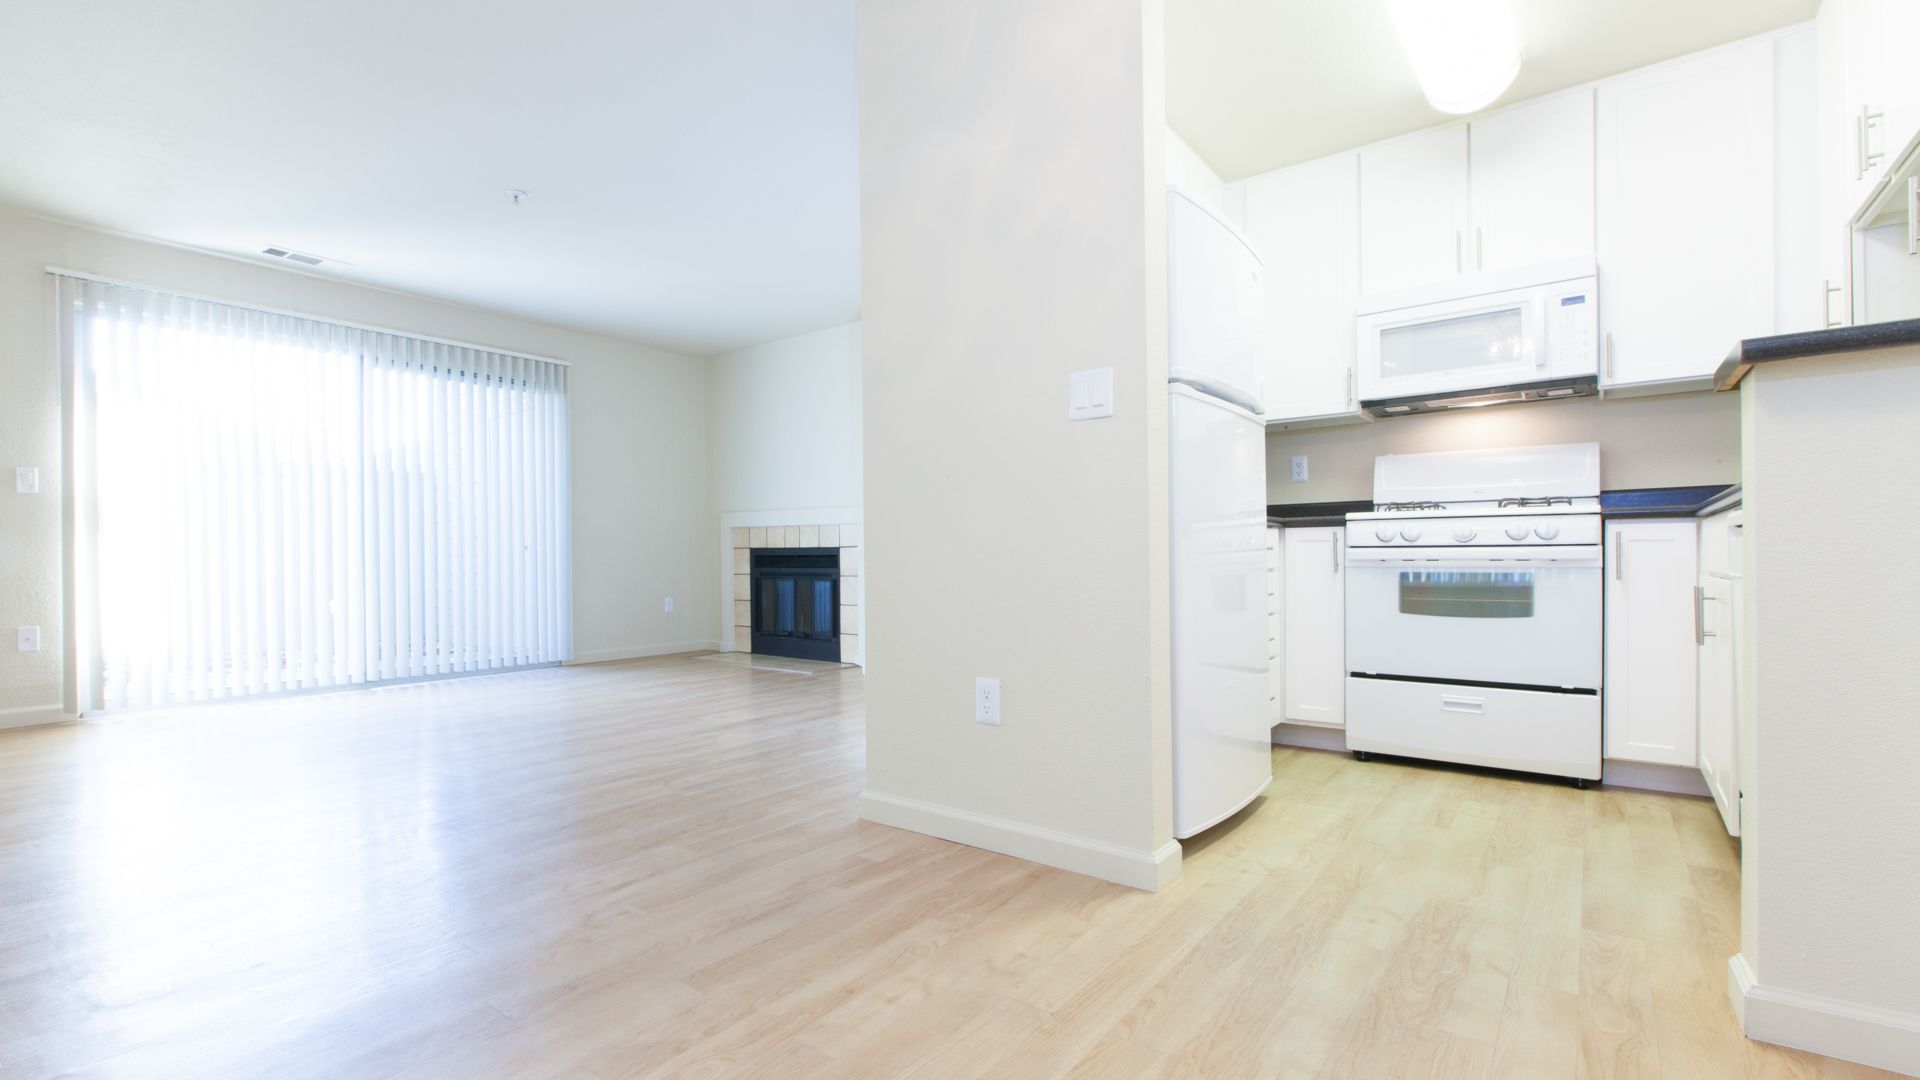 Lantern Cove Apartments - Kitchen and Living Room